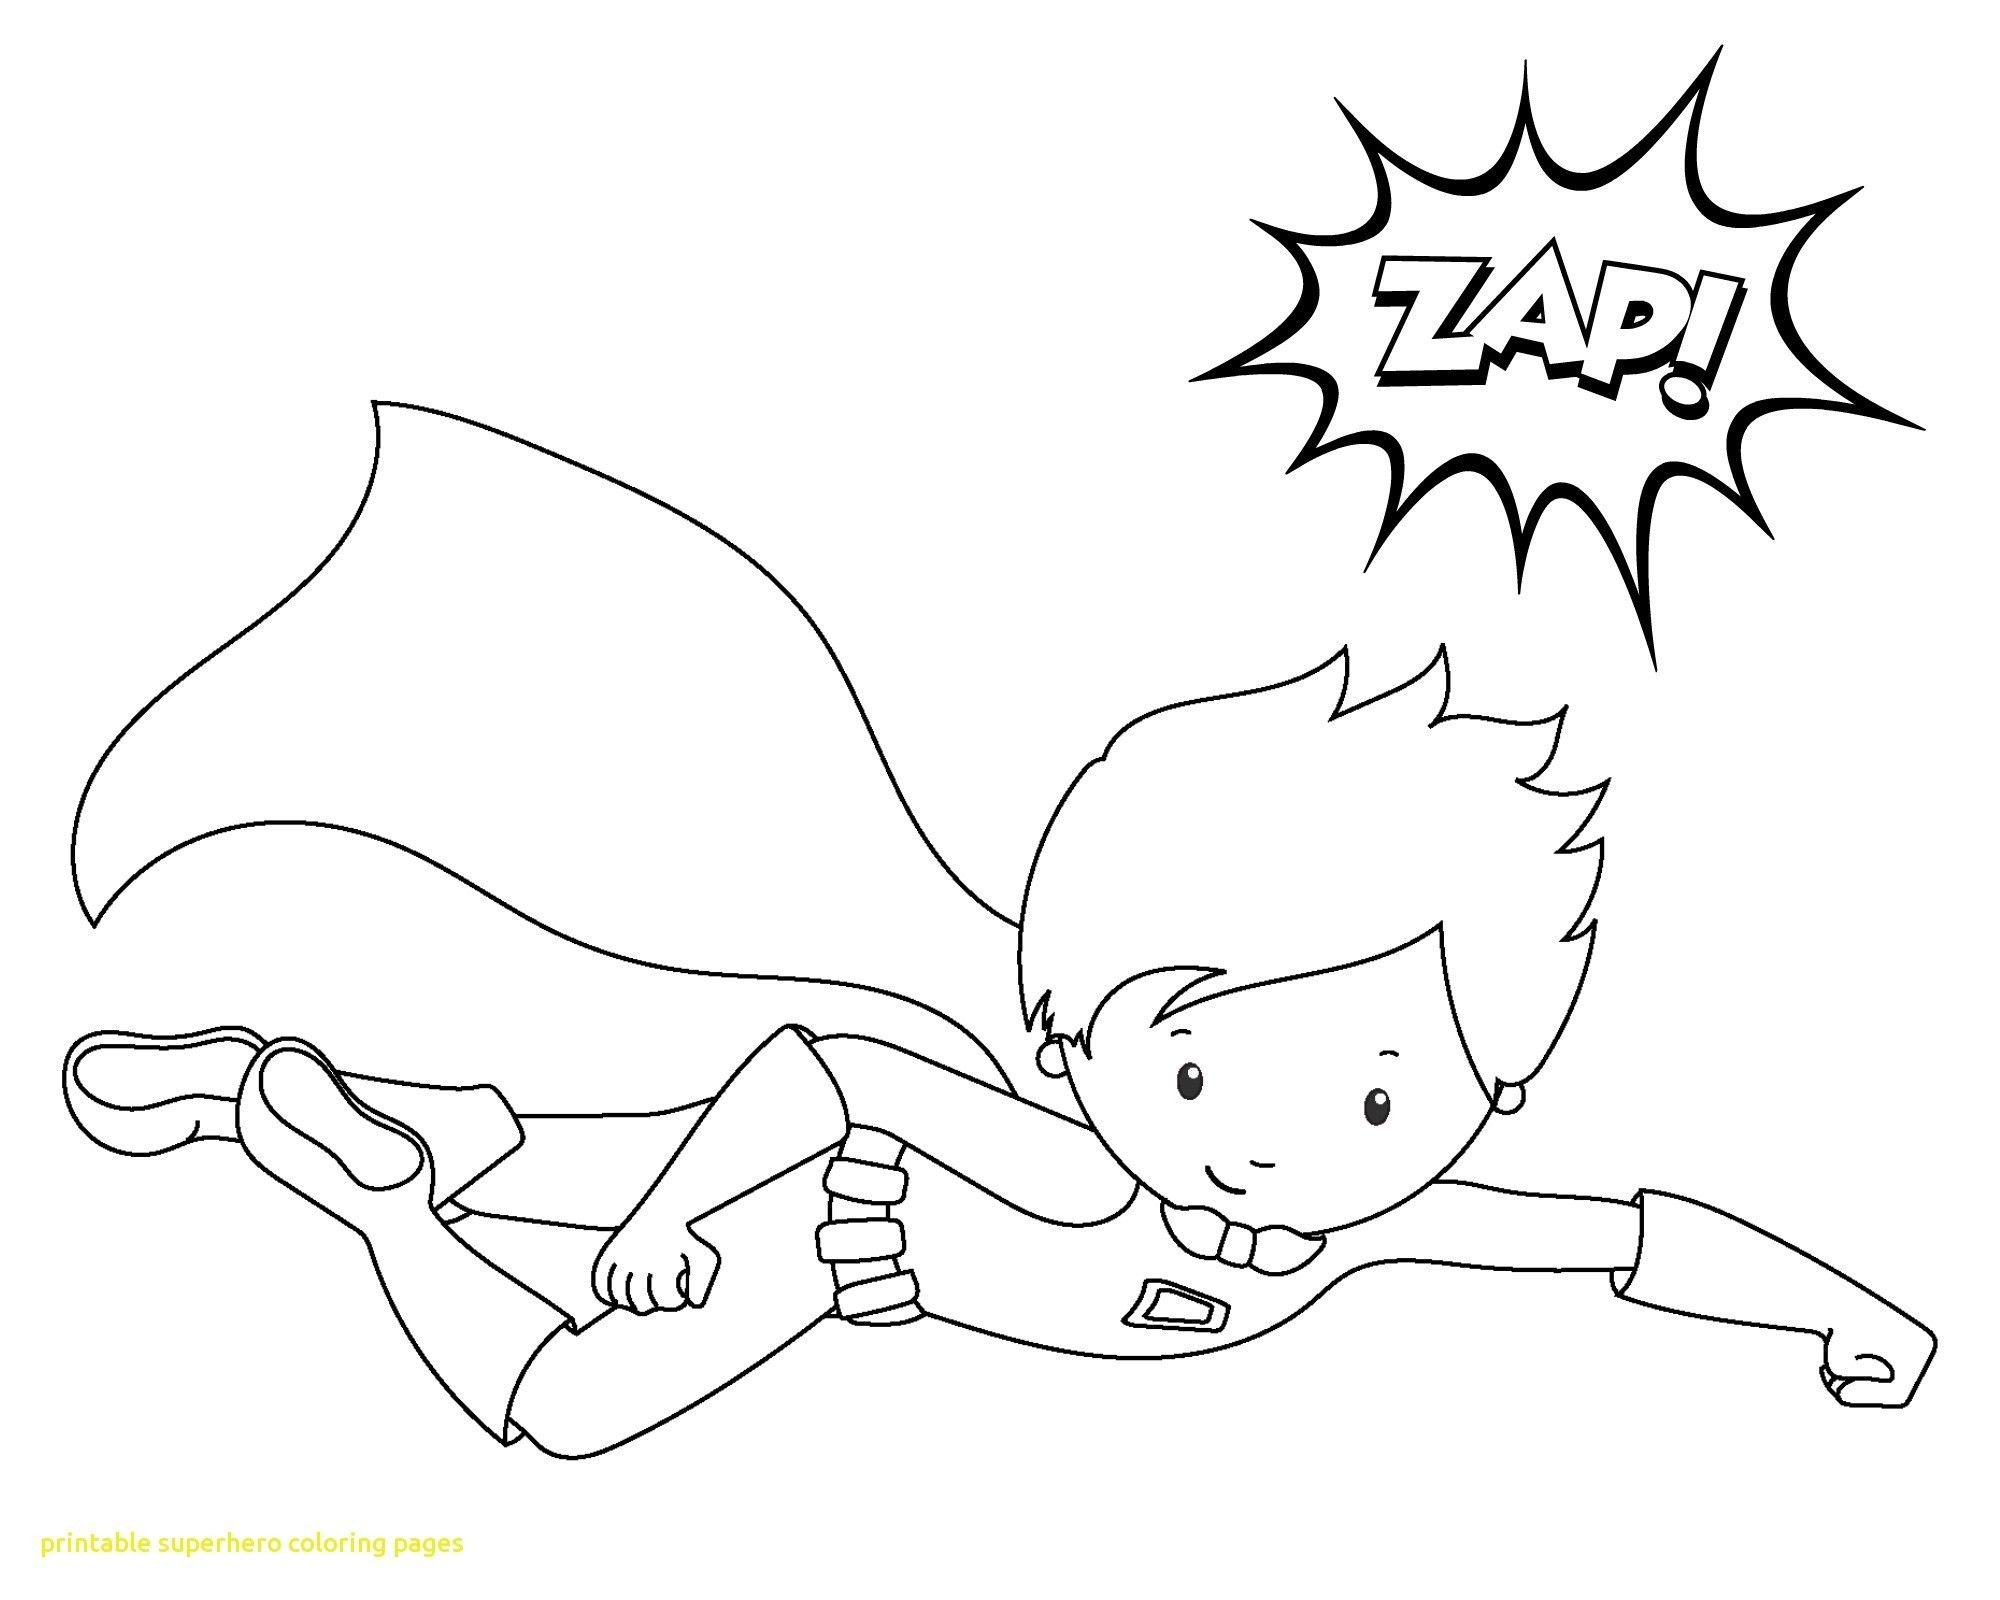 2000x1600 Free Superhero Coloring Pages To Print Copy Print Out Coloring